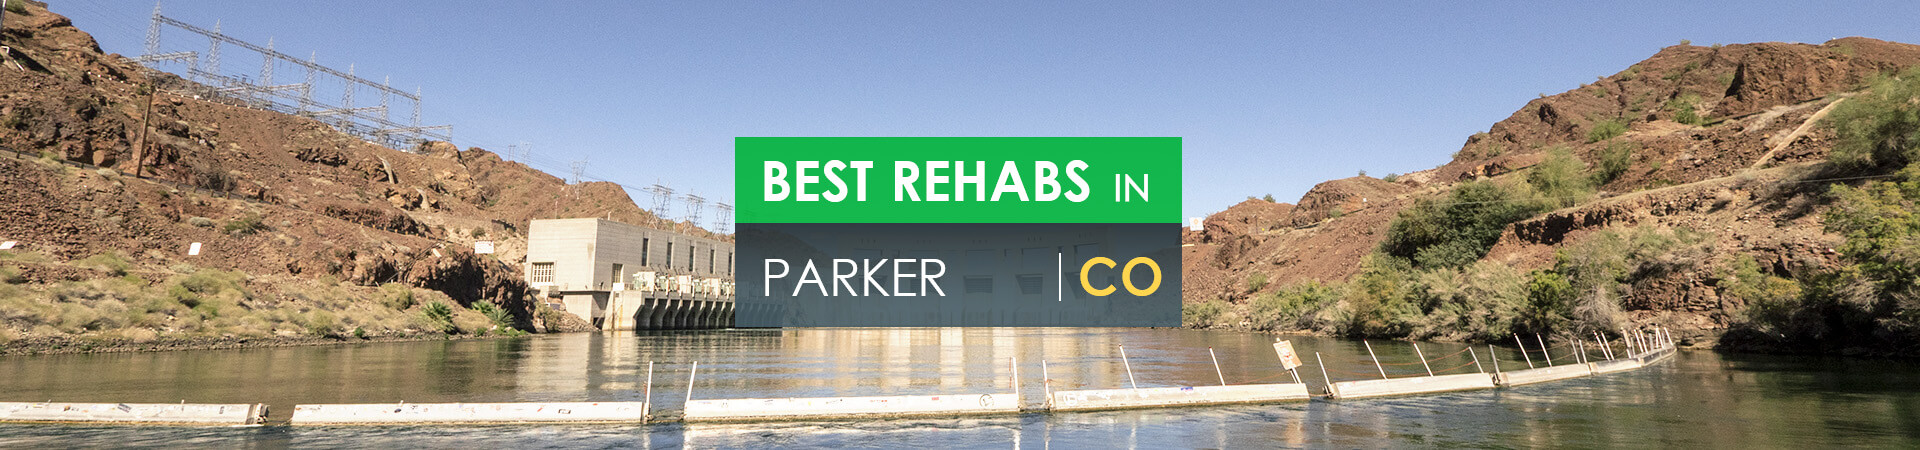 Best rehabs in Parker, CO